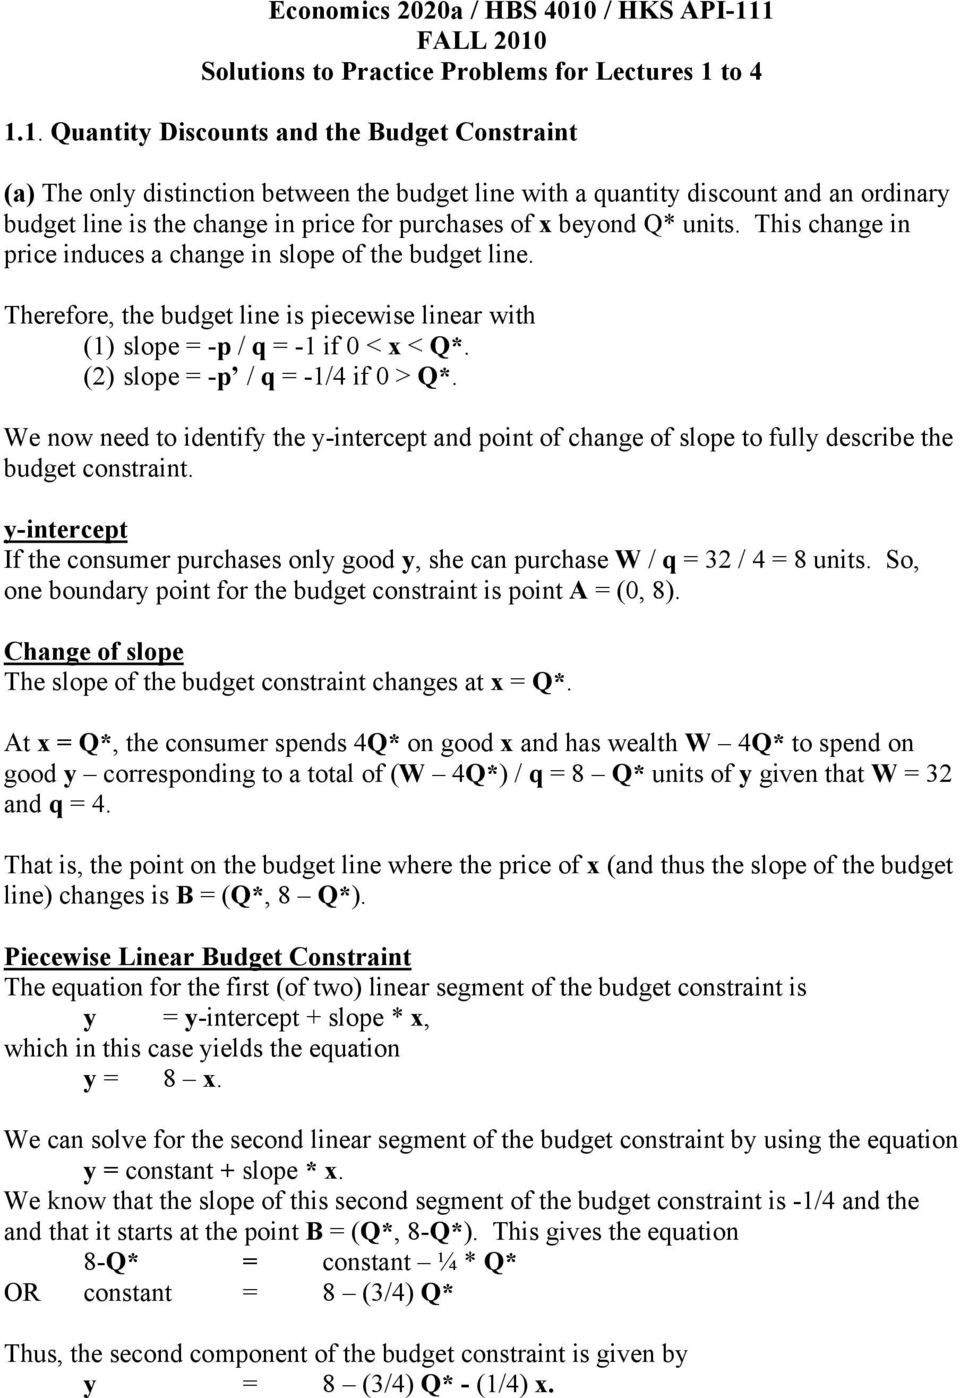 1 FALL 010 Solutions to Practice Problems for Lectures 1 to 4 1.1. Quantity Discounts and the Budget Constraint (a) The only distinction between the budget line with a quantity discount and an